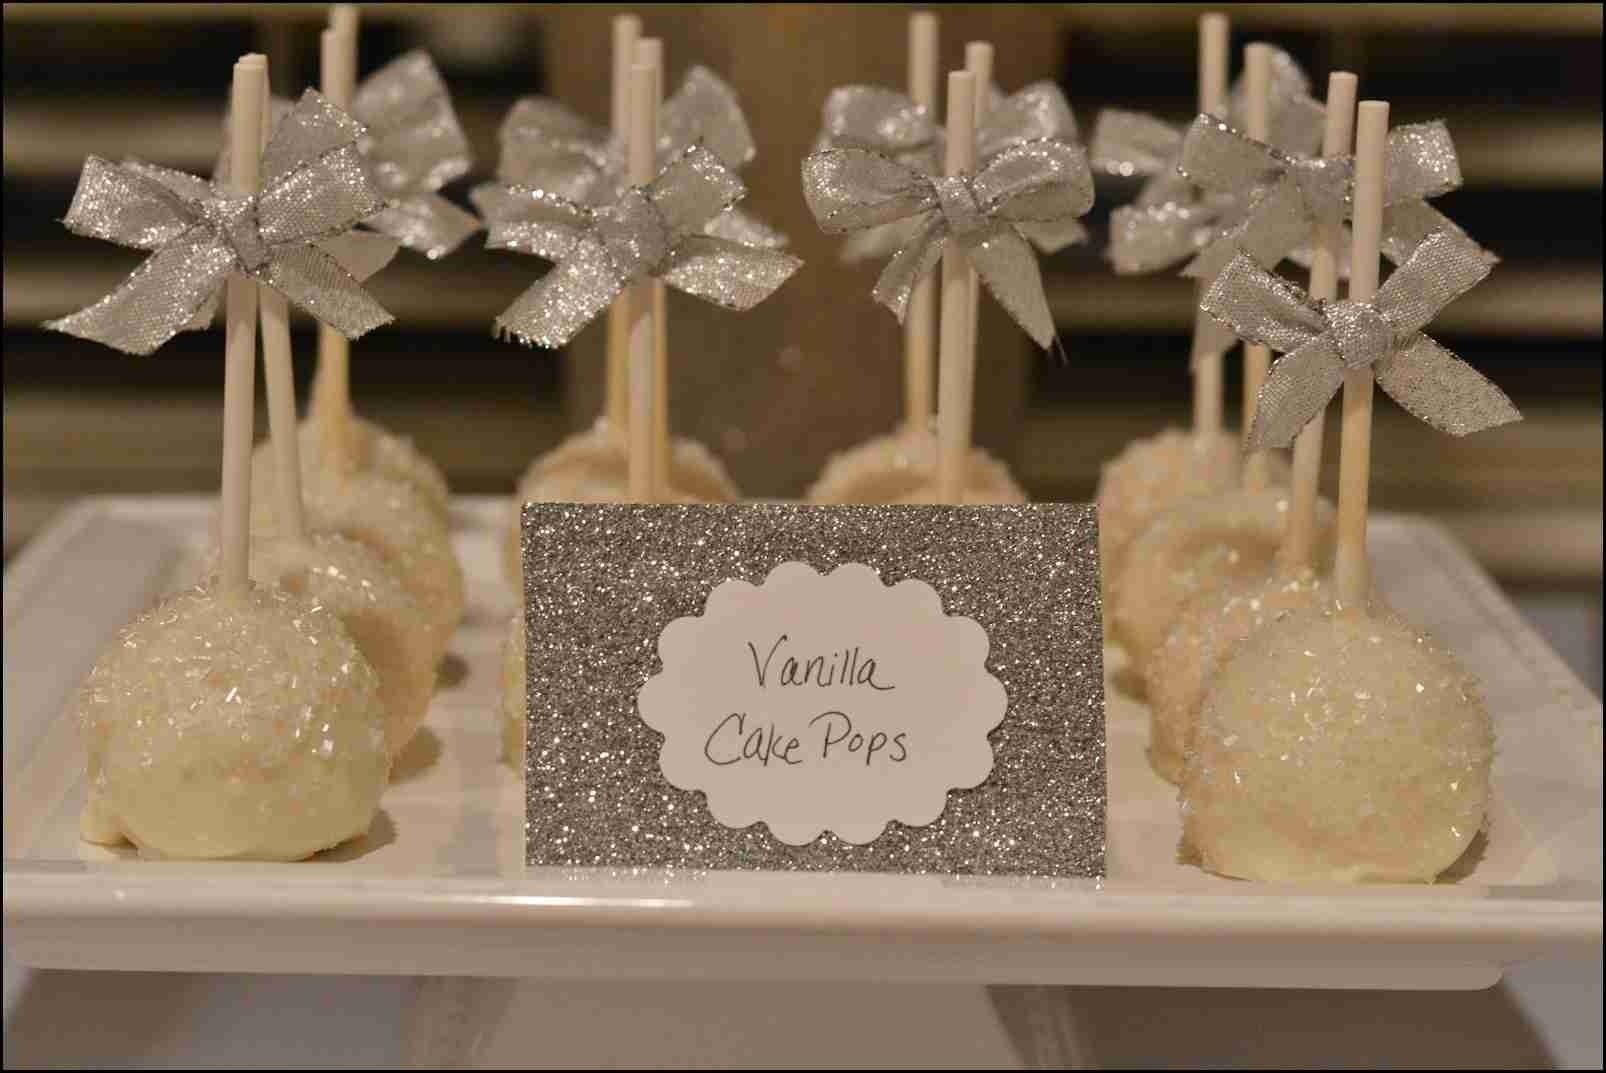 10 Nice 10 Year Wedding Anniversary Party Ideas 10 year wedding anniversary party ideas evgplc